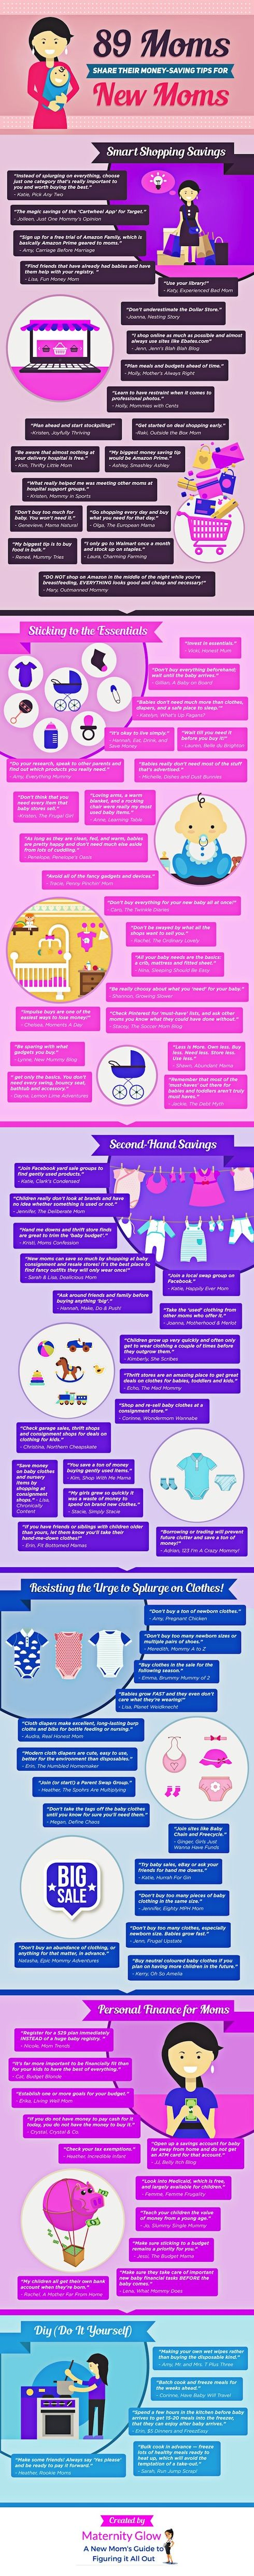 Infographic - Money Saving Tips for New Moms. Kate from Maternity Glow reached out to 89 mommy bloggers and asked them all the same question - What are your top money saving tips for new moms?